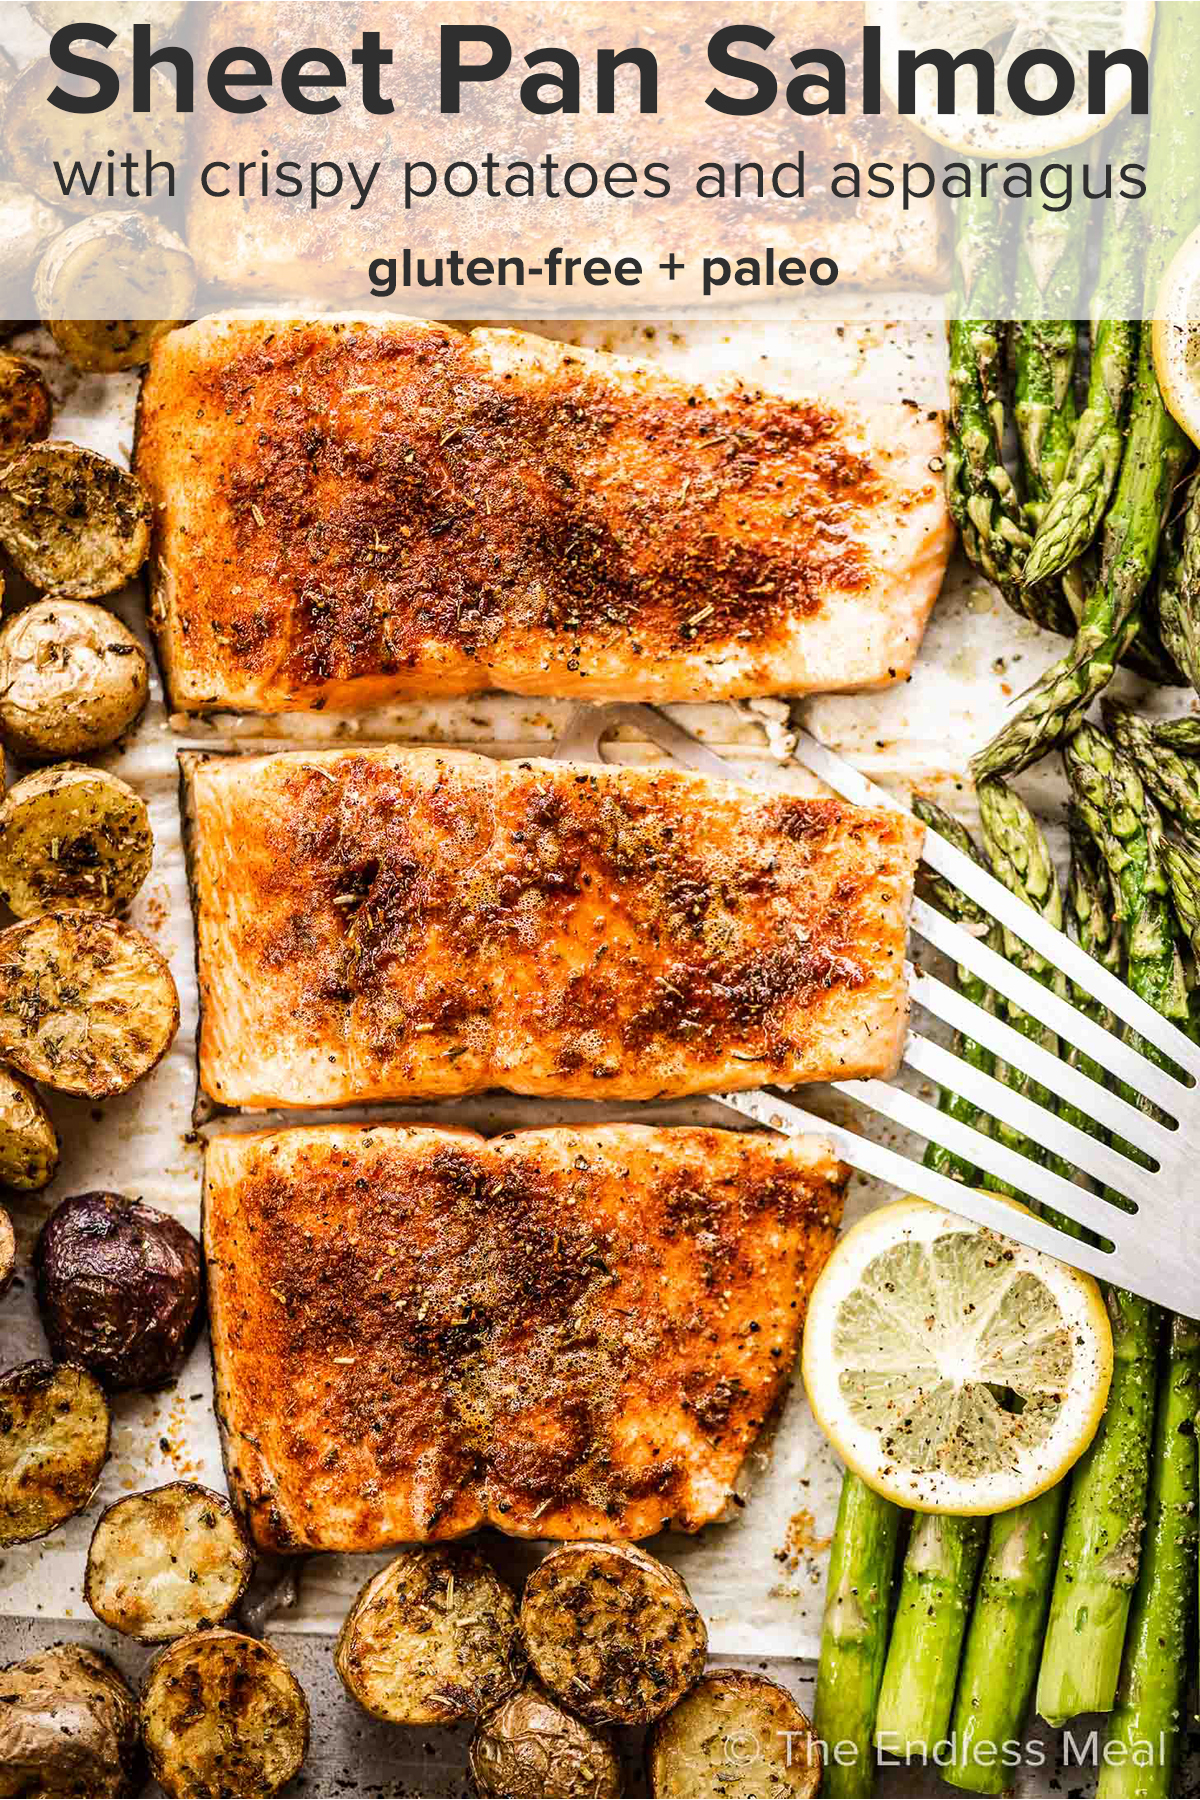 Sheet pan salmon on a baking sheet with potatoes and asparagus and the recipe title on top of the picture.